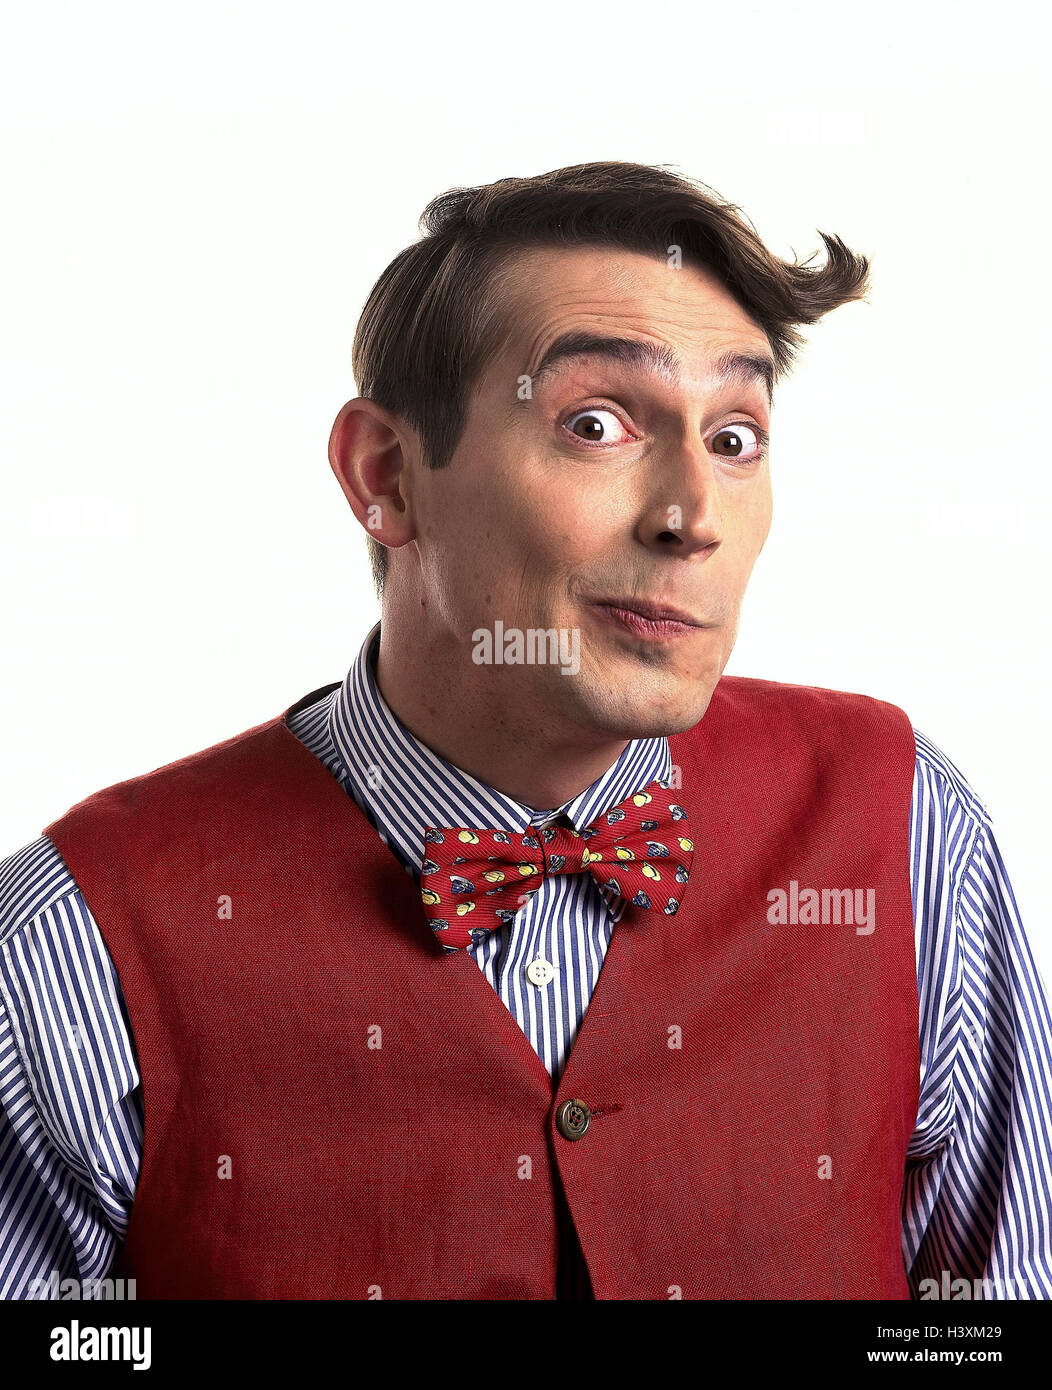 Man, young, page apex, mop hair, shirt, waistcoat, fly, facial play, interrogatorily, uncertainly, portrait, Men, - Stock Image